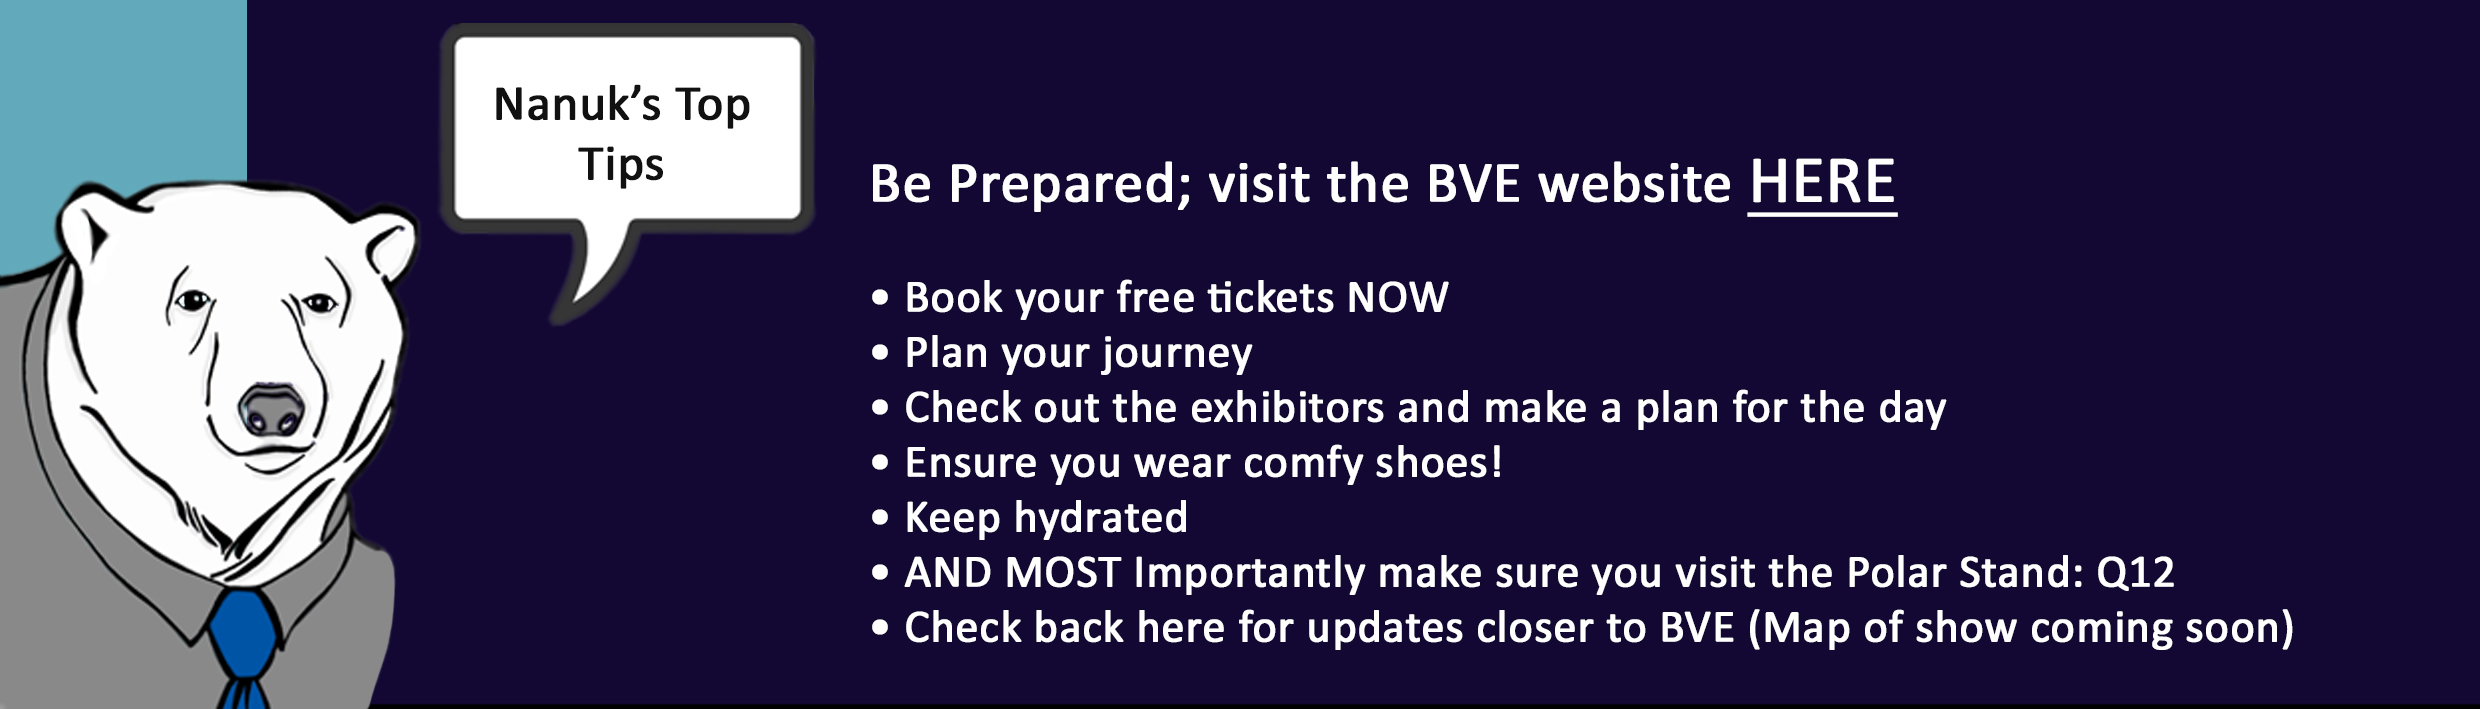 Plan Your Visit for BVE 2017_Nanuk's Top Tips for BVE 2017